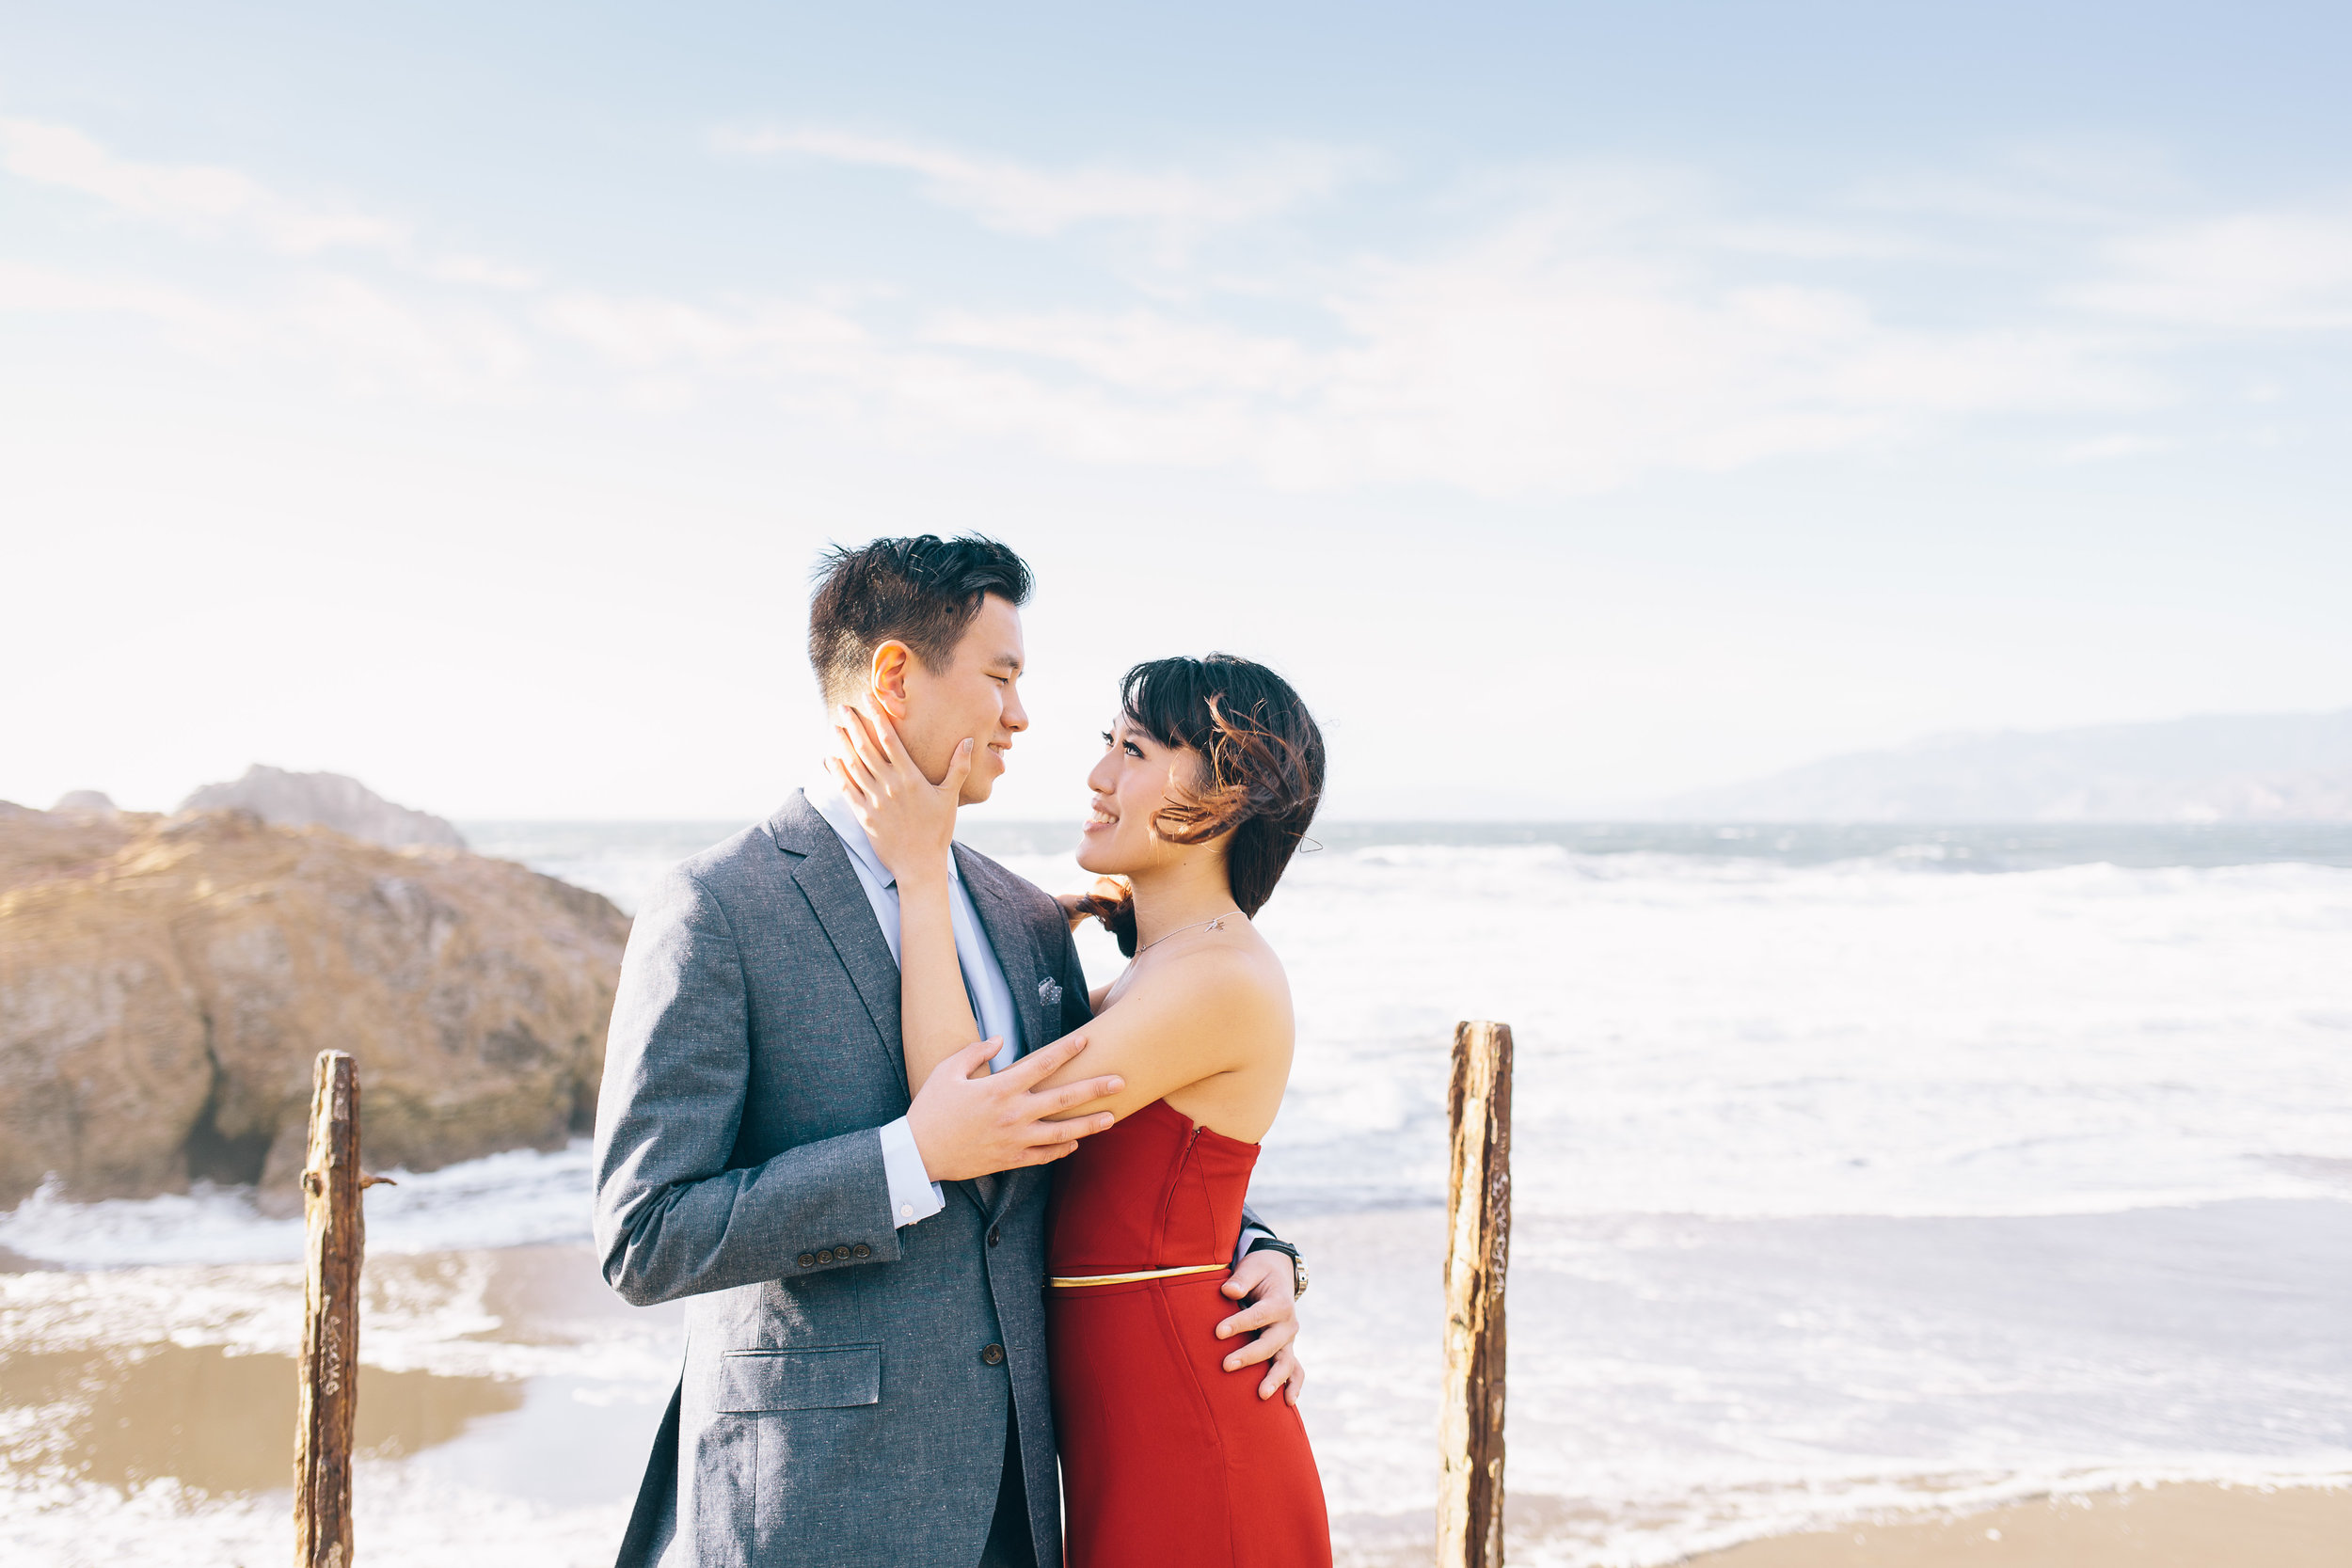 Pre-Wedding Photos in San Francisco by JBJ Pictures Pre-Wedding Photographer, Engagement Session and Wedding Photography in Napa, Sonoma, SF Bay Area (27).jpg